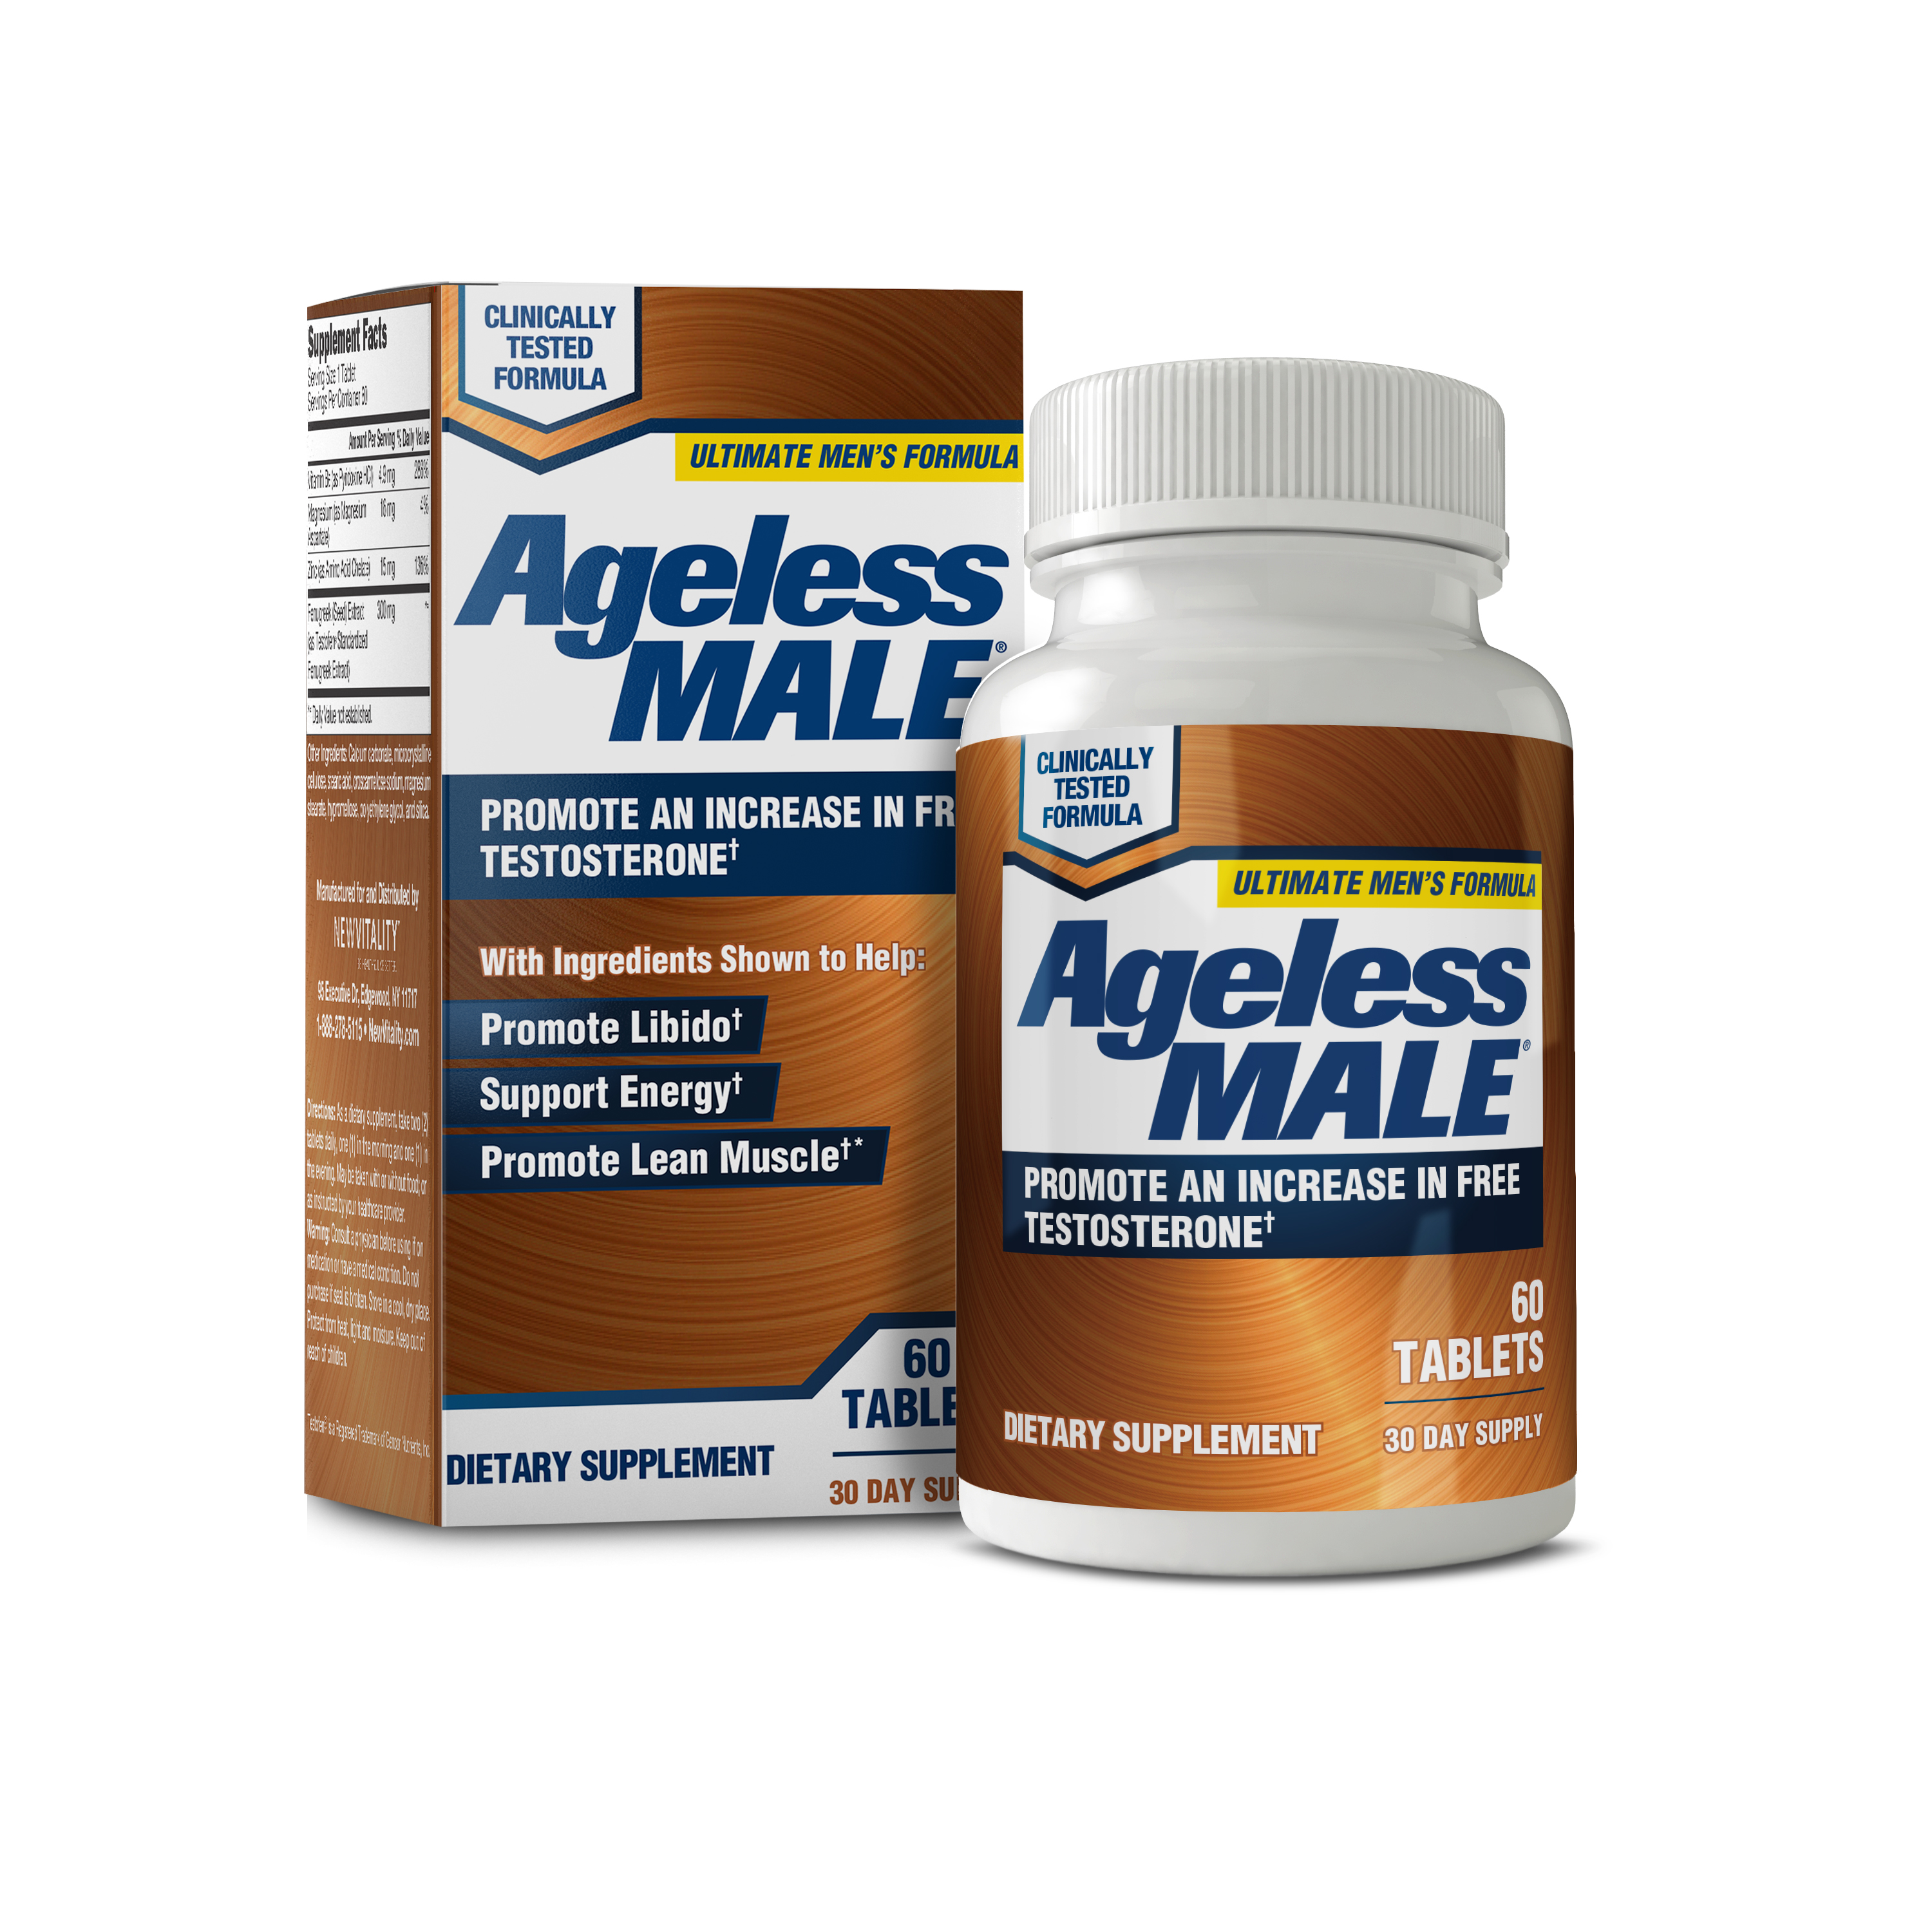 Ageless Male Free Testosterone Booster Capsules, 60 Ct